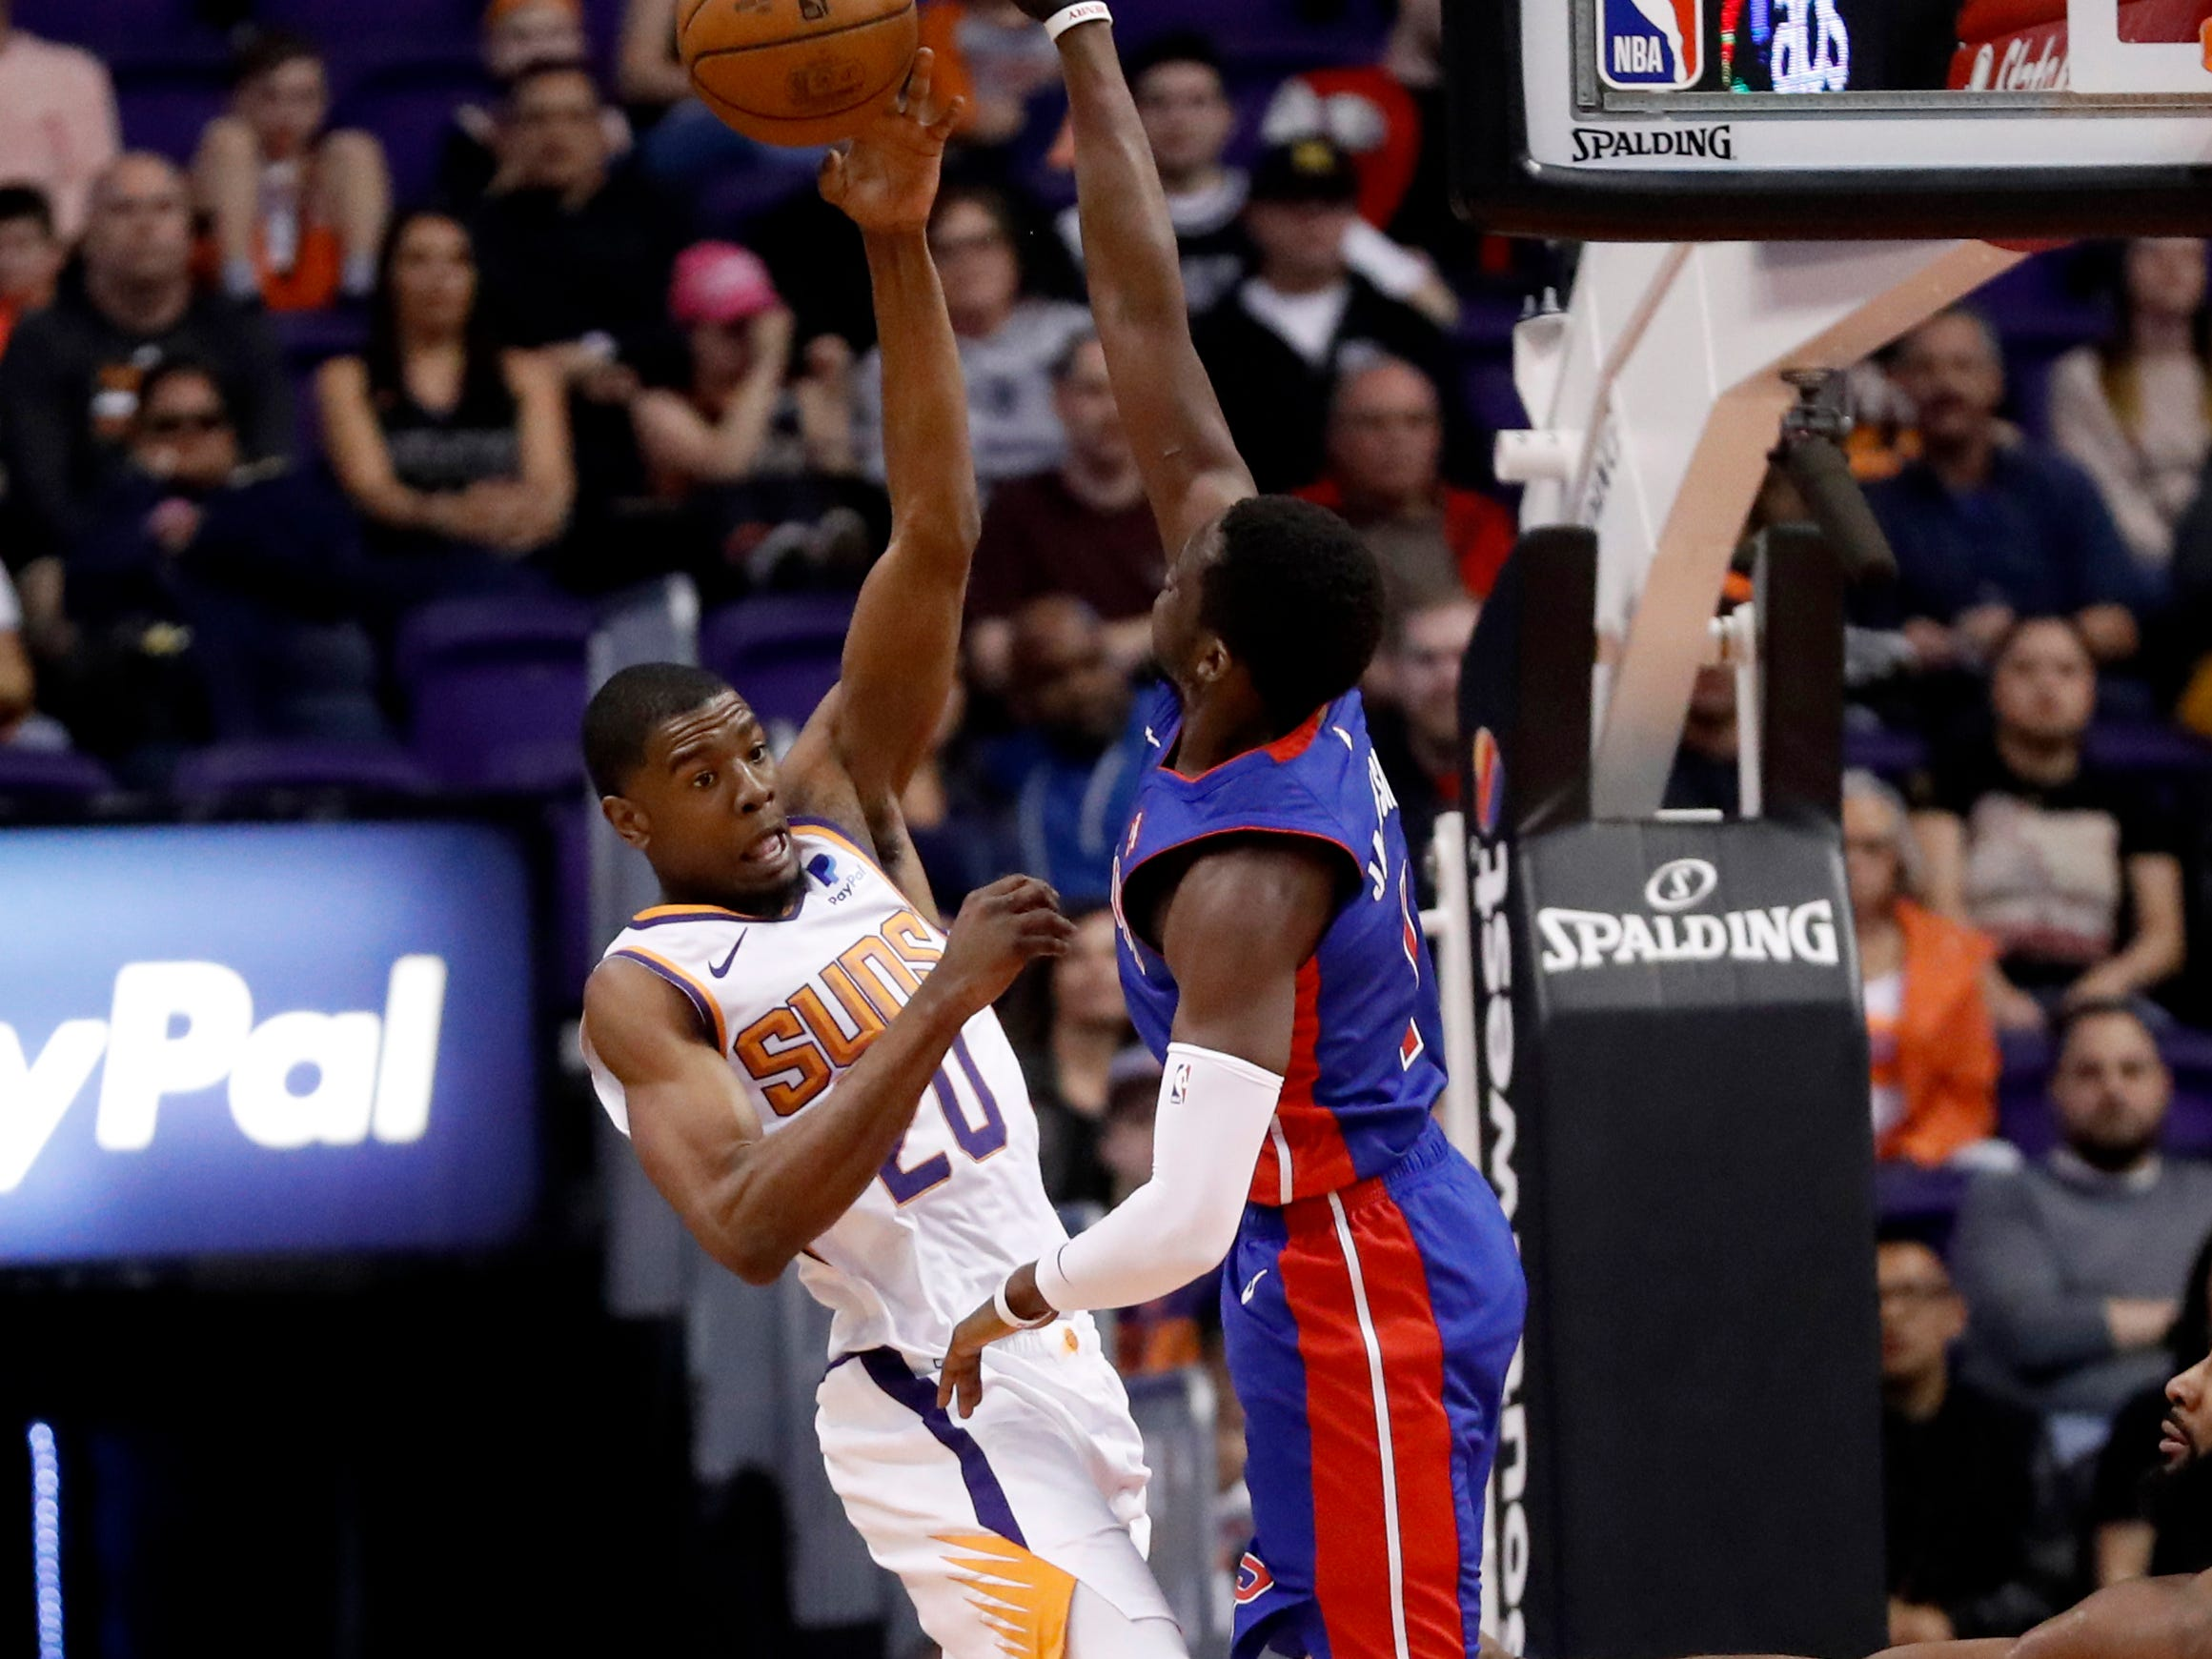 Phoenix Suns forward Josh Jackson (20) passes the ball over Detroit Pistons center Andre Drummond during the first half of an NBA basketball game Thursday, March 21, 2019, in Phoenix.